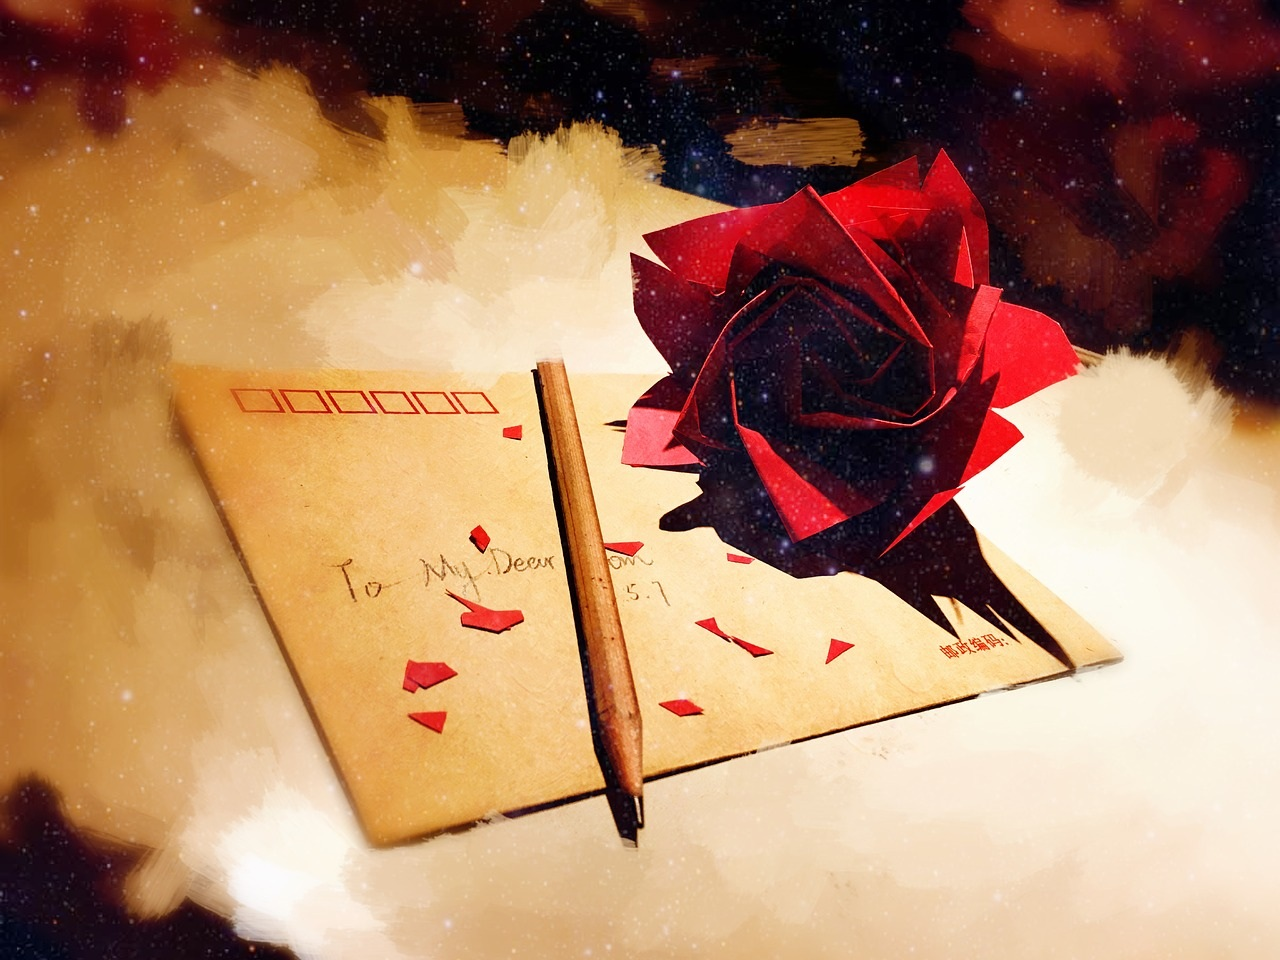 Manual-Love-Letters-Roses-Letter-Mothers-Day-2047932.jpg